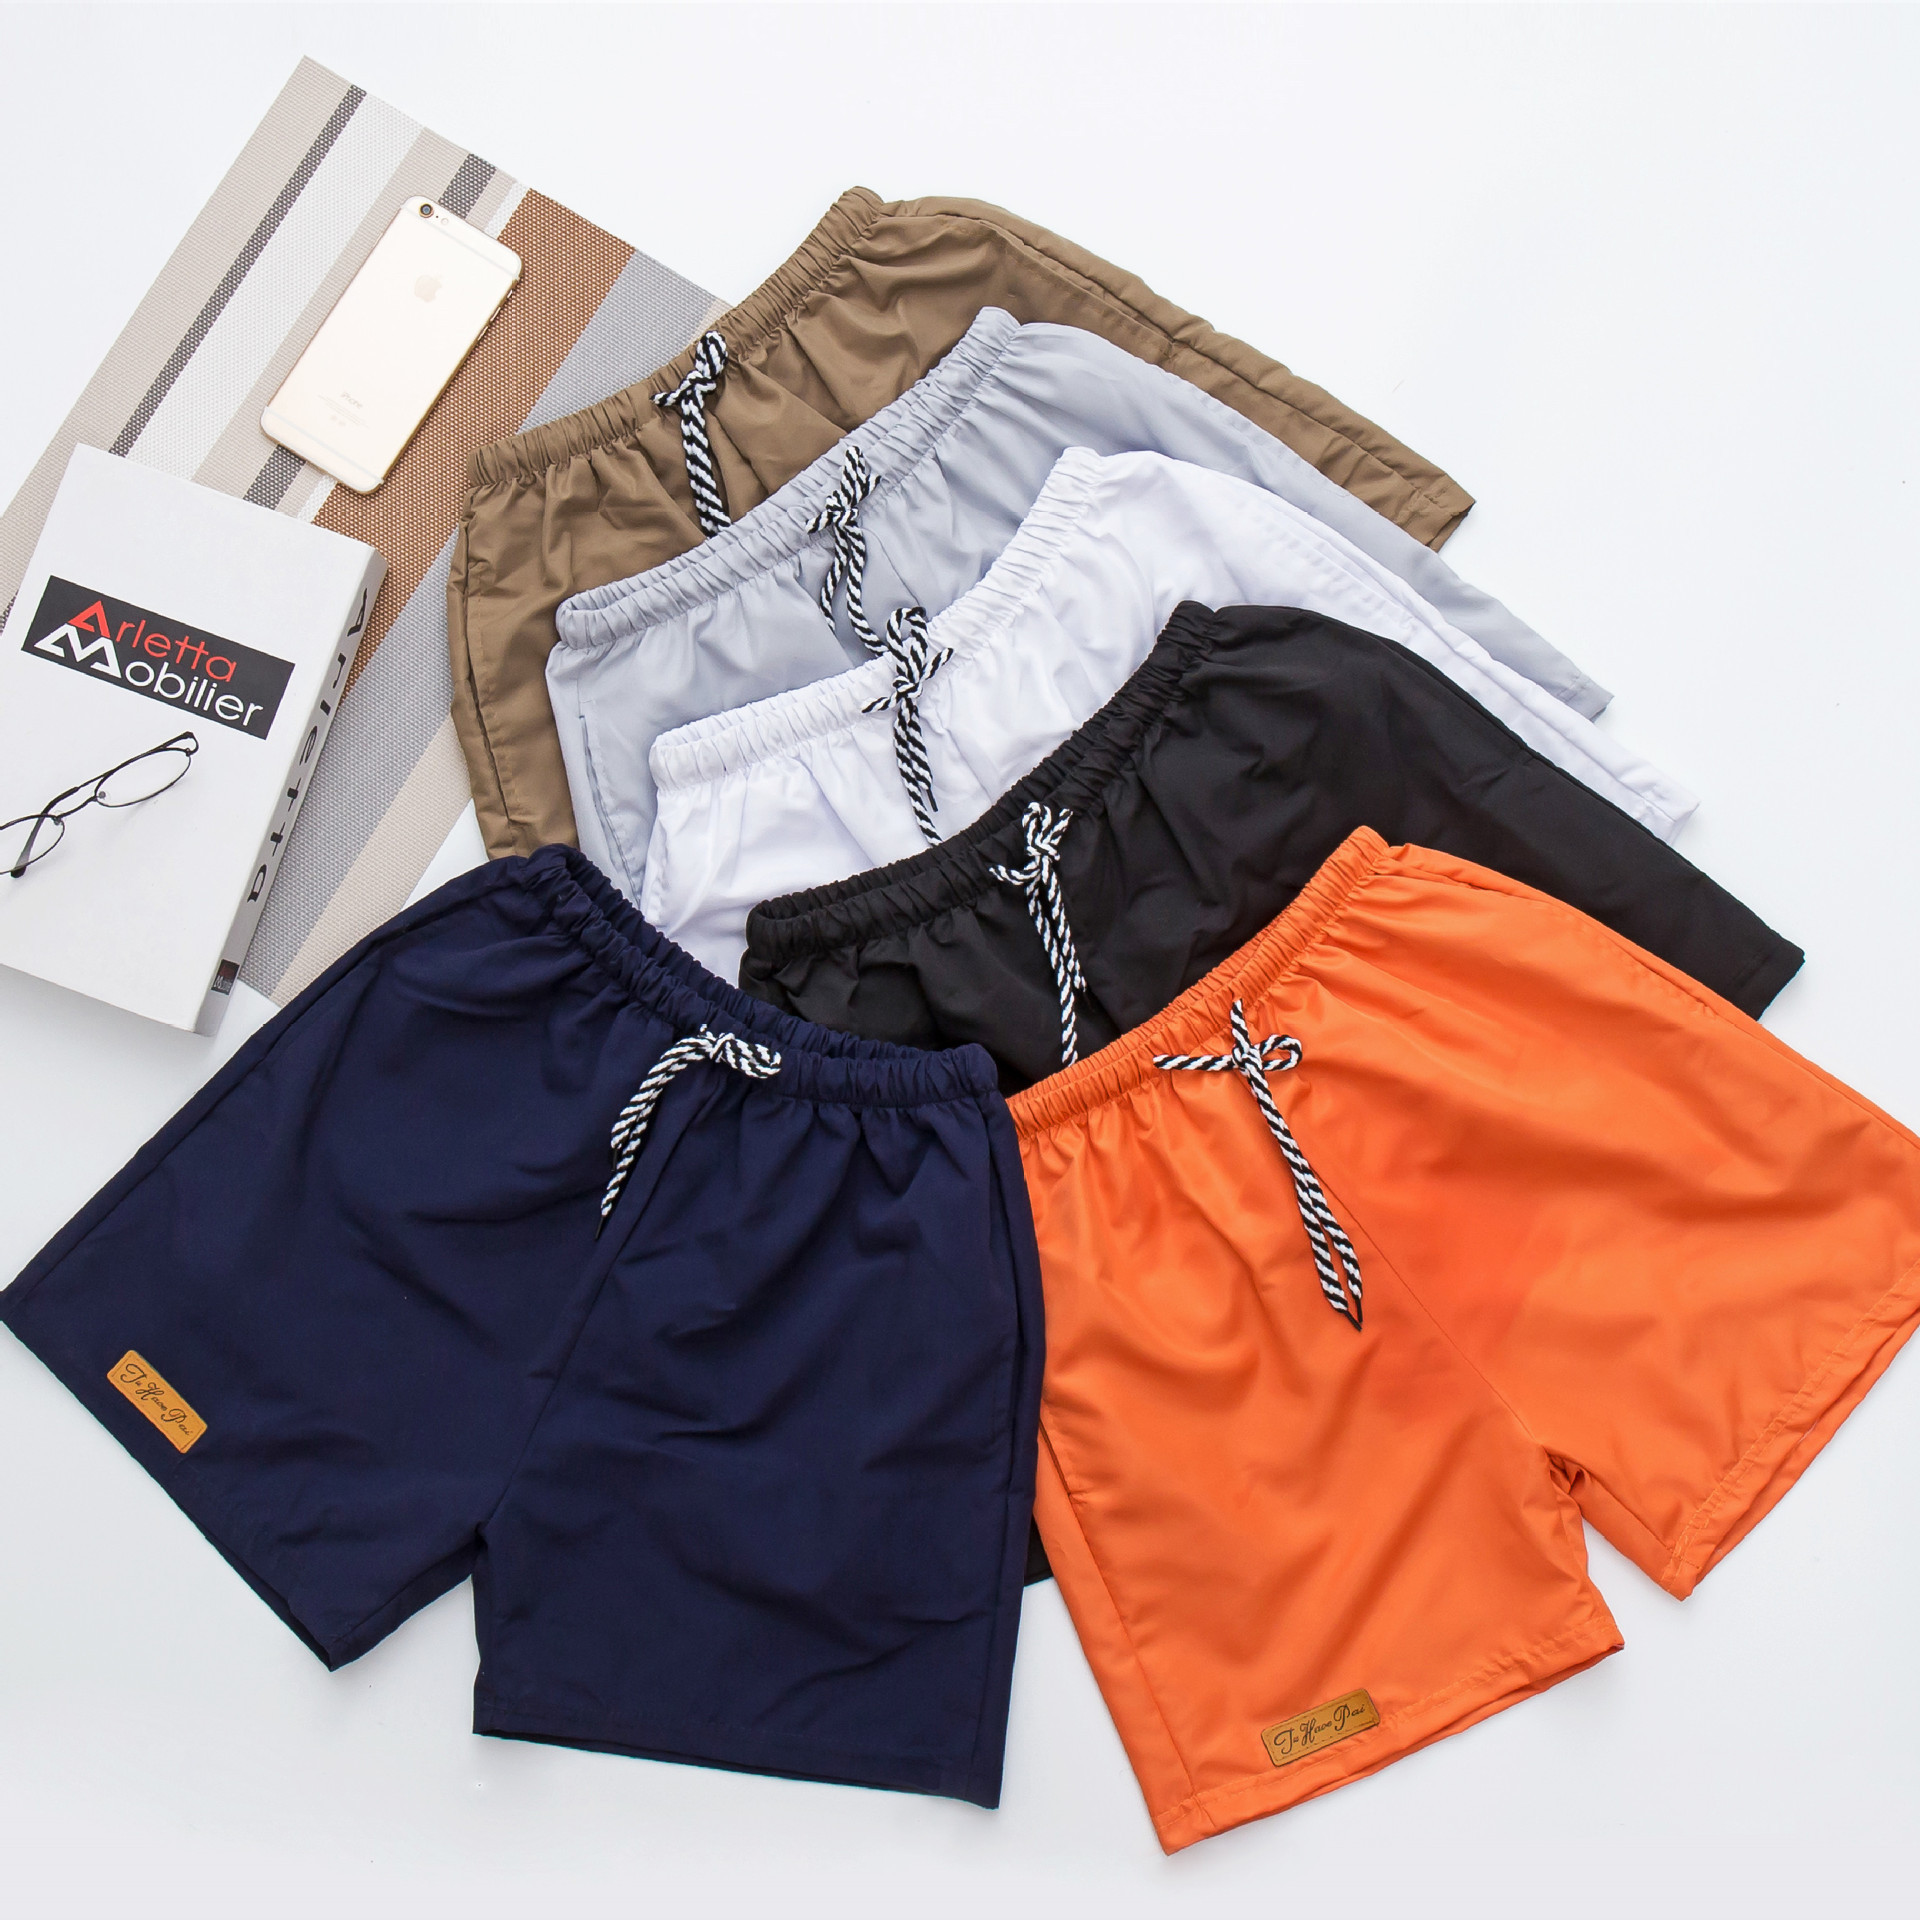 New Style Men Summer Couples 3 Pants Beach Shorts Candy-Colored Casual Pants Sports Shorts Hot Pants Fashion Man